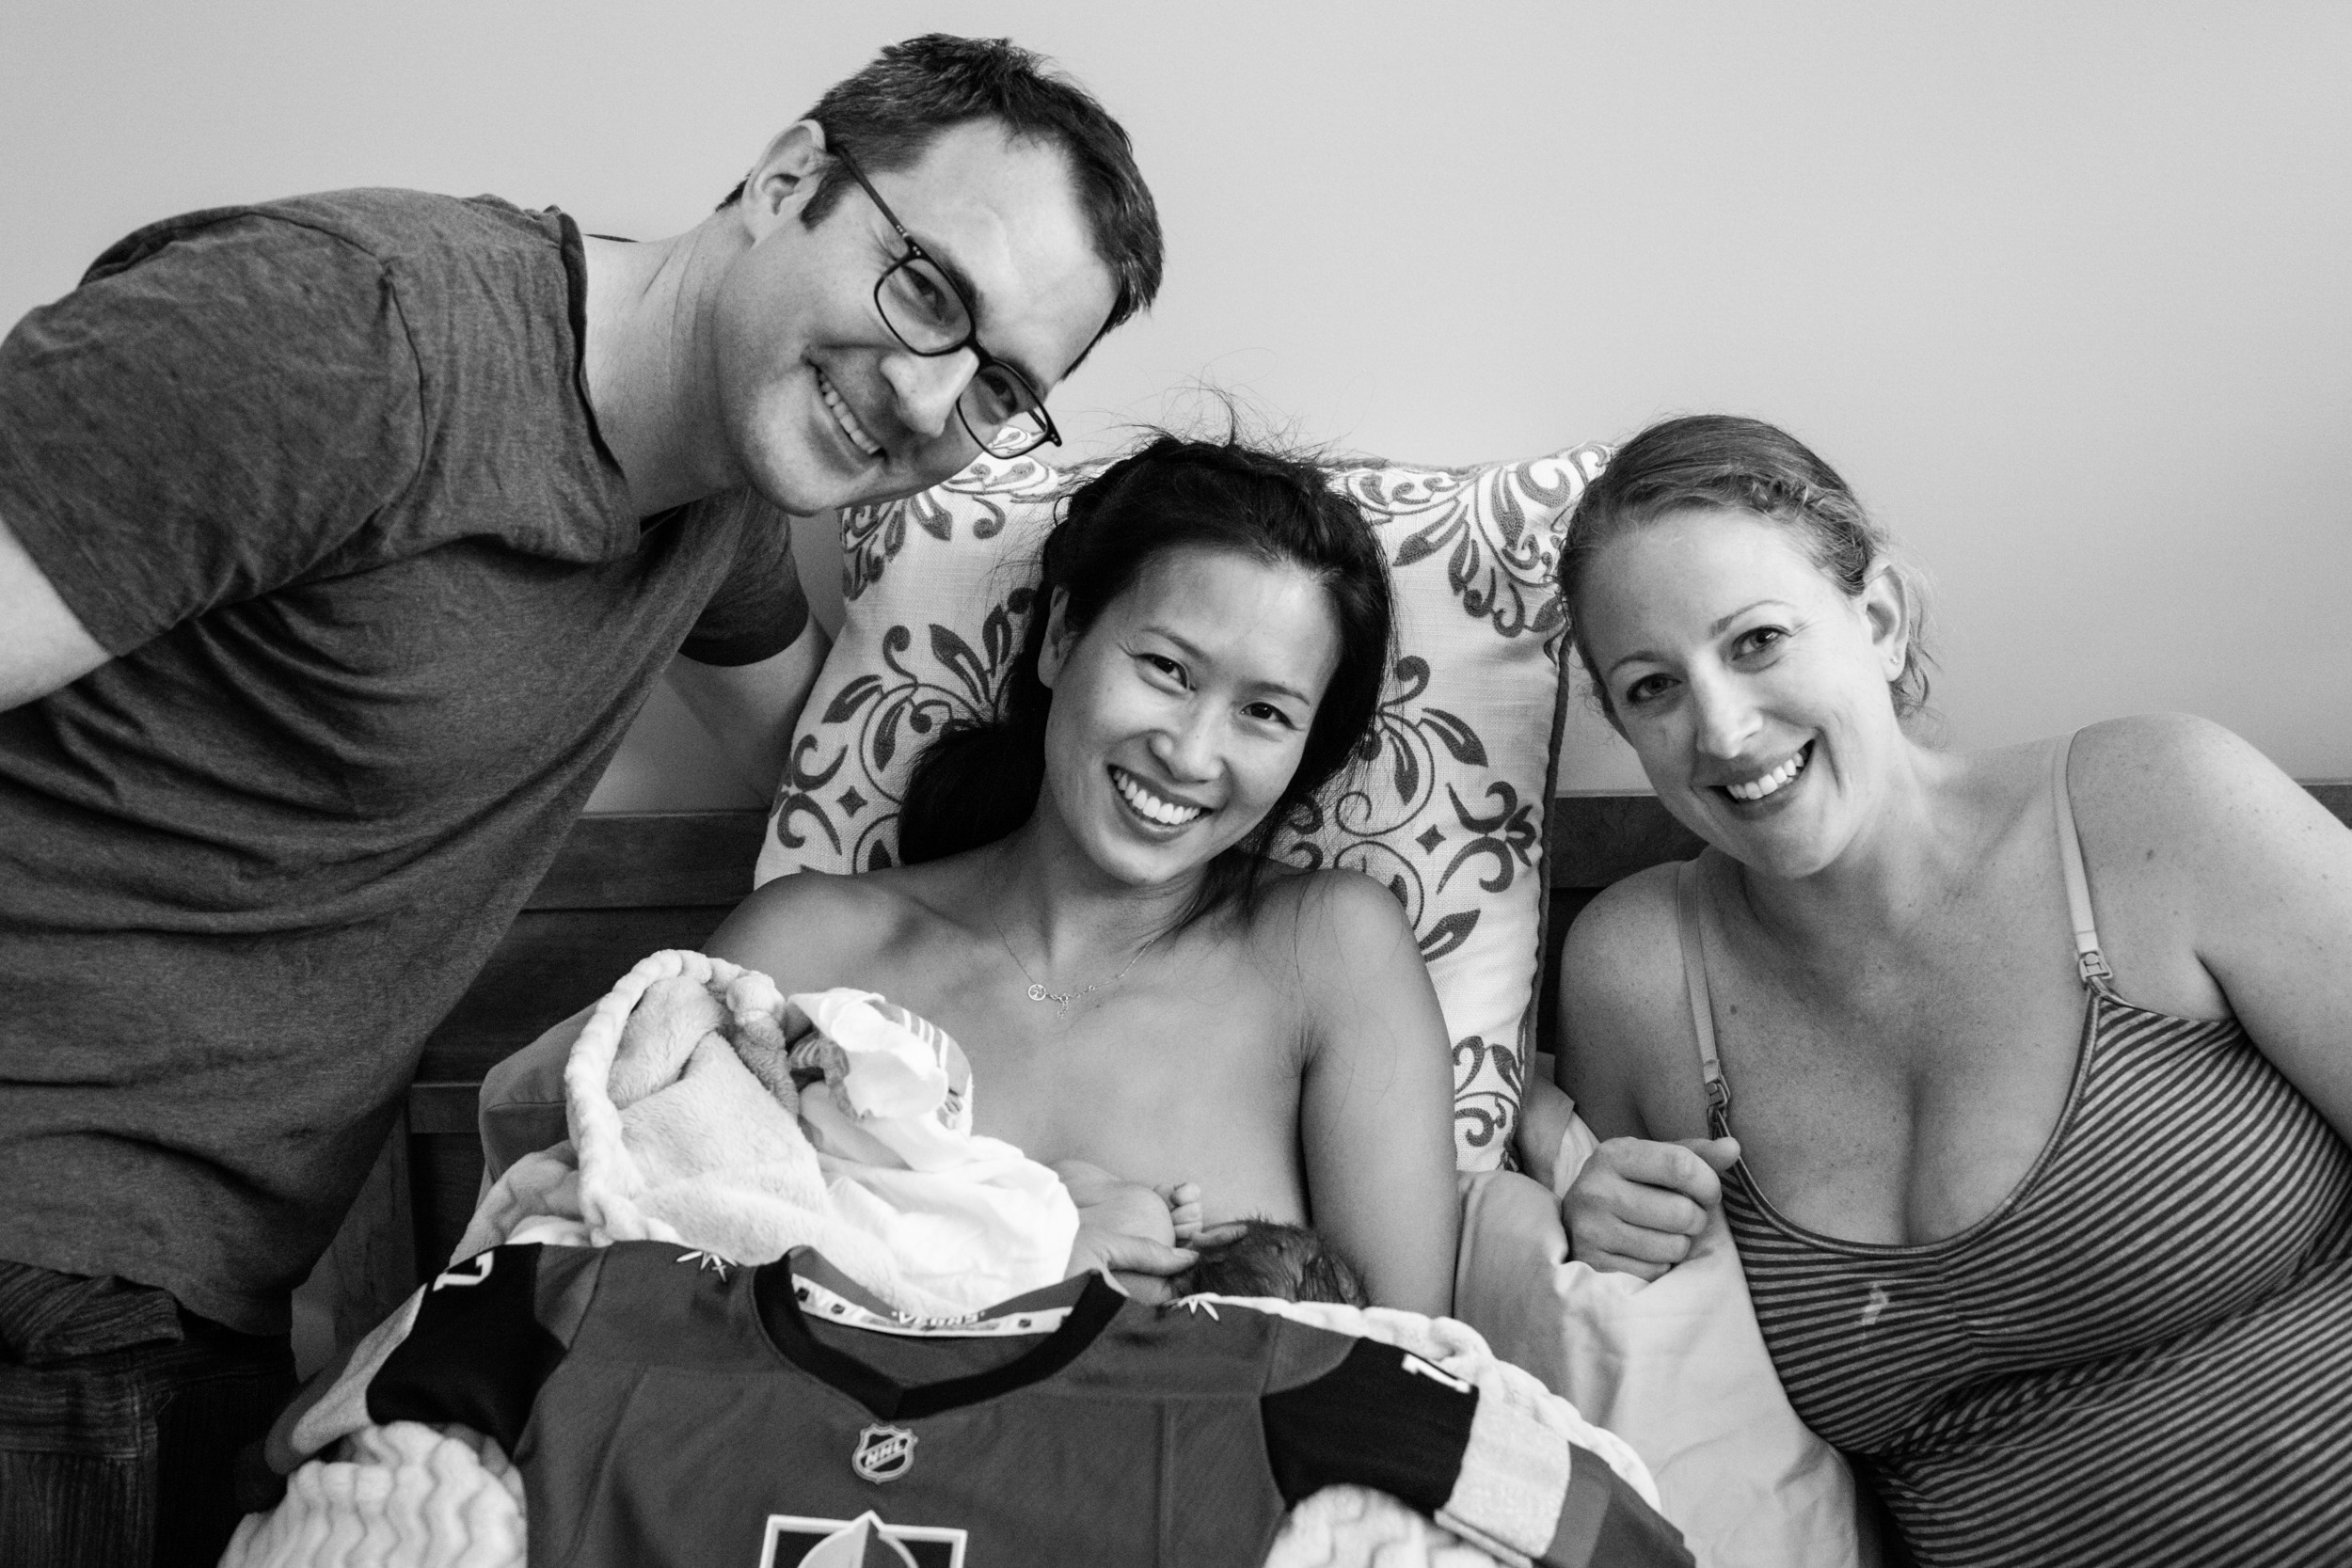 group portrait of new parents and surrogate mother with newborn baby boy